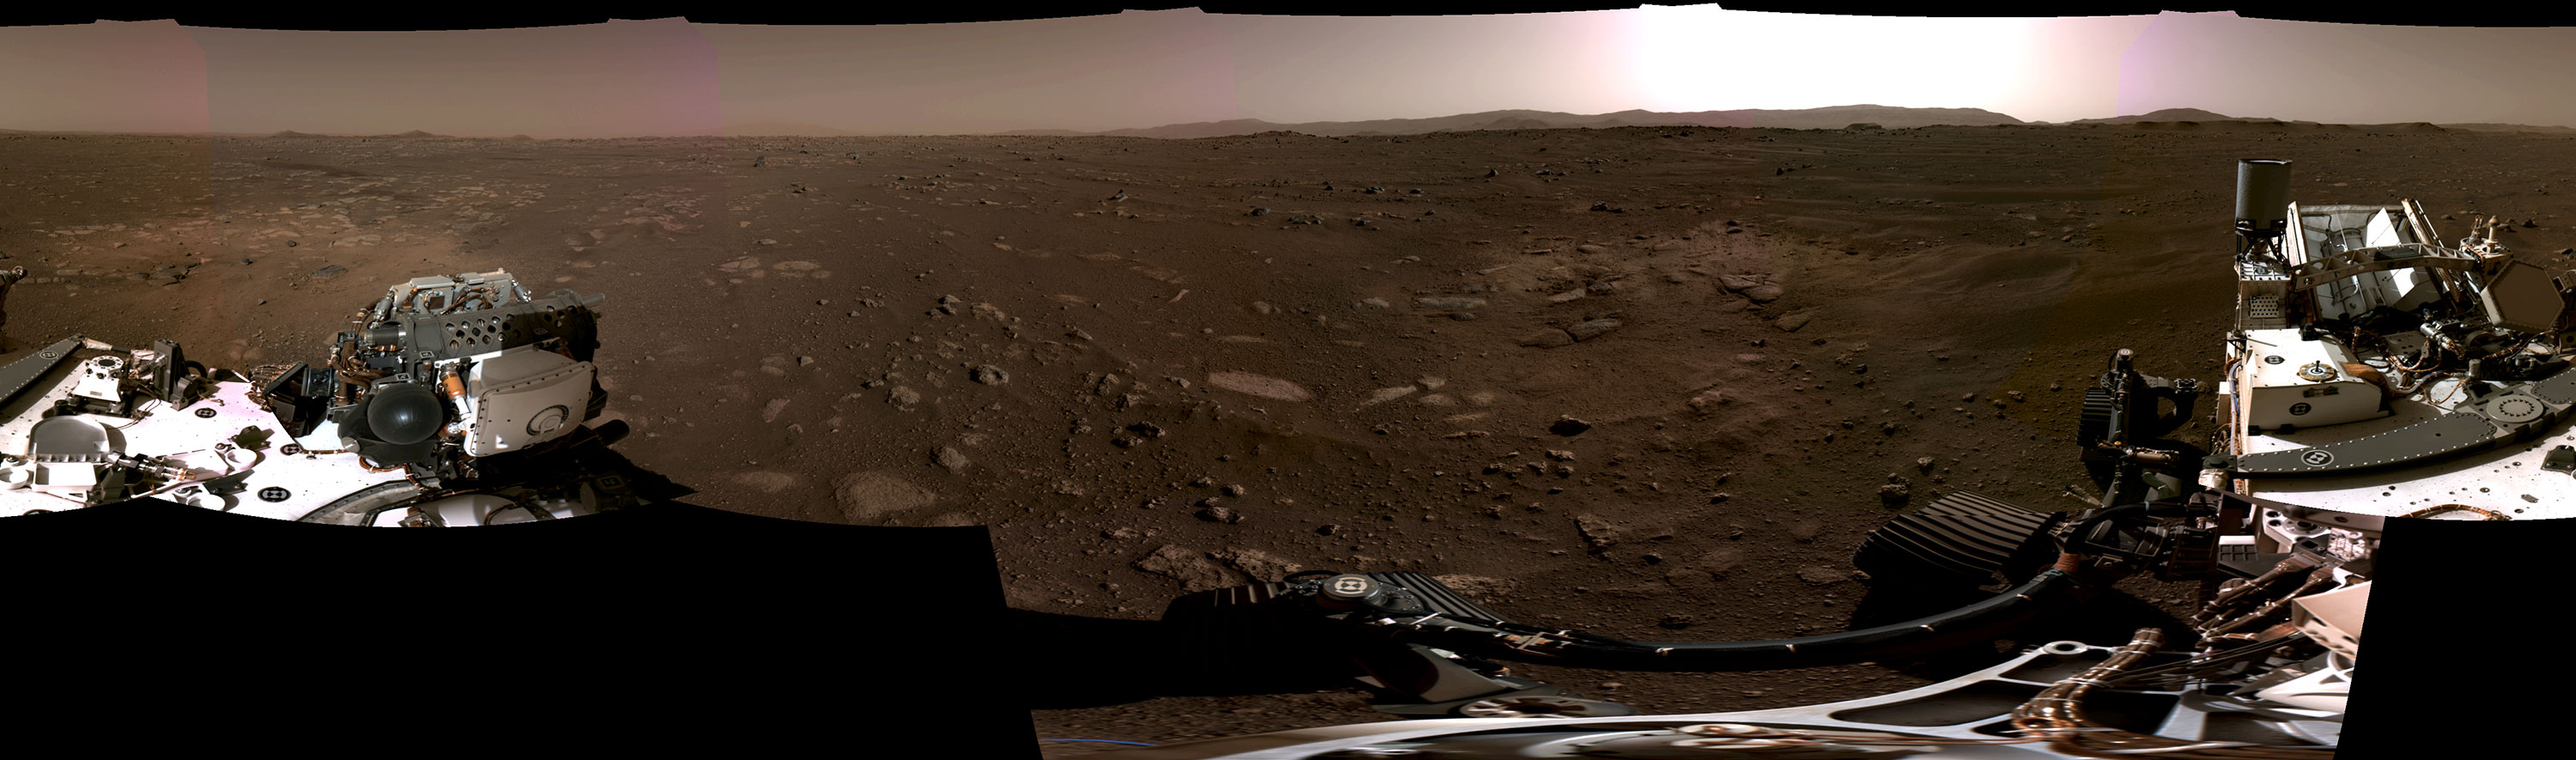 Panoramic image of the Martian landscape and Perseverance rover.